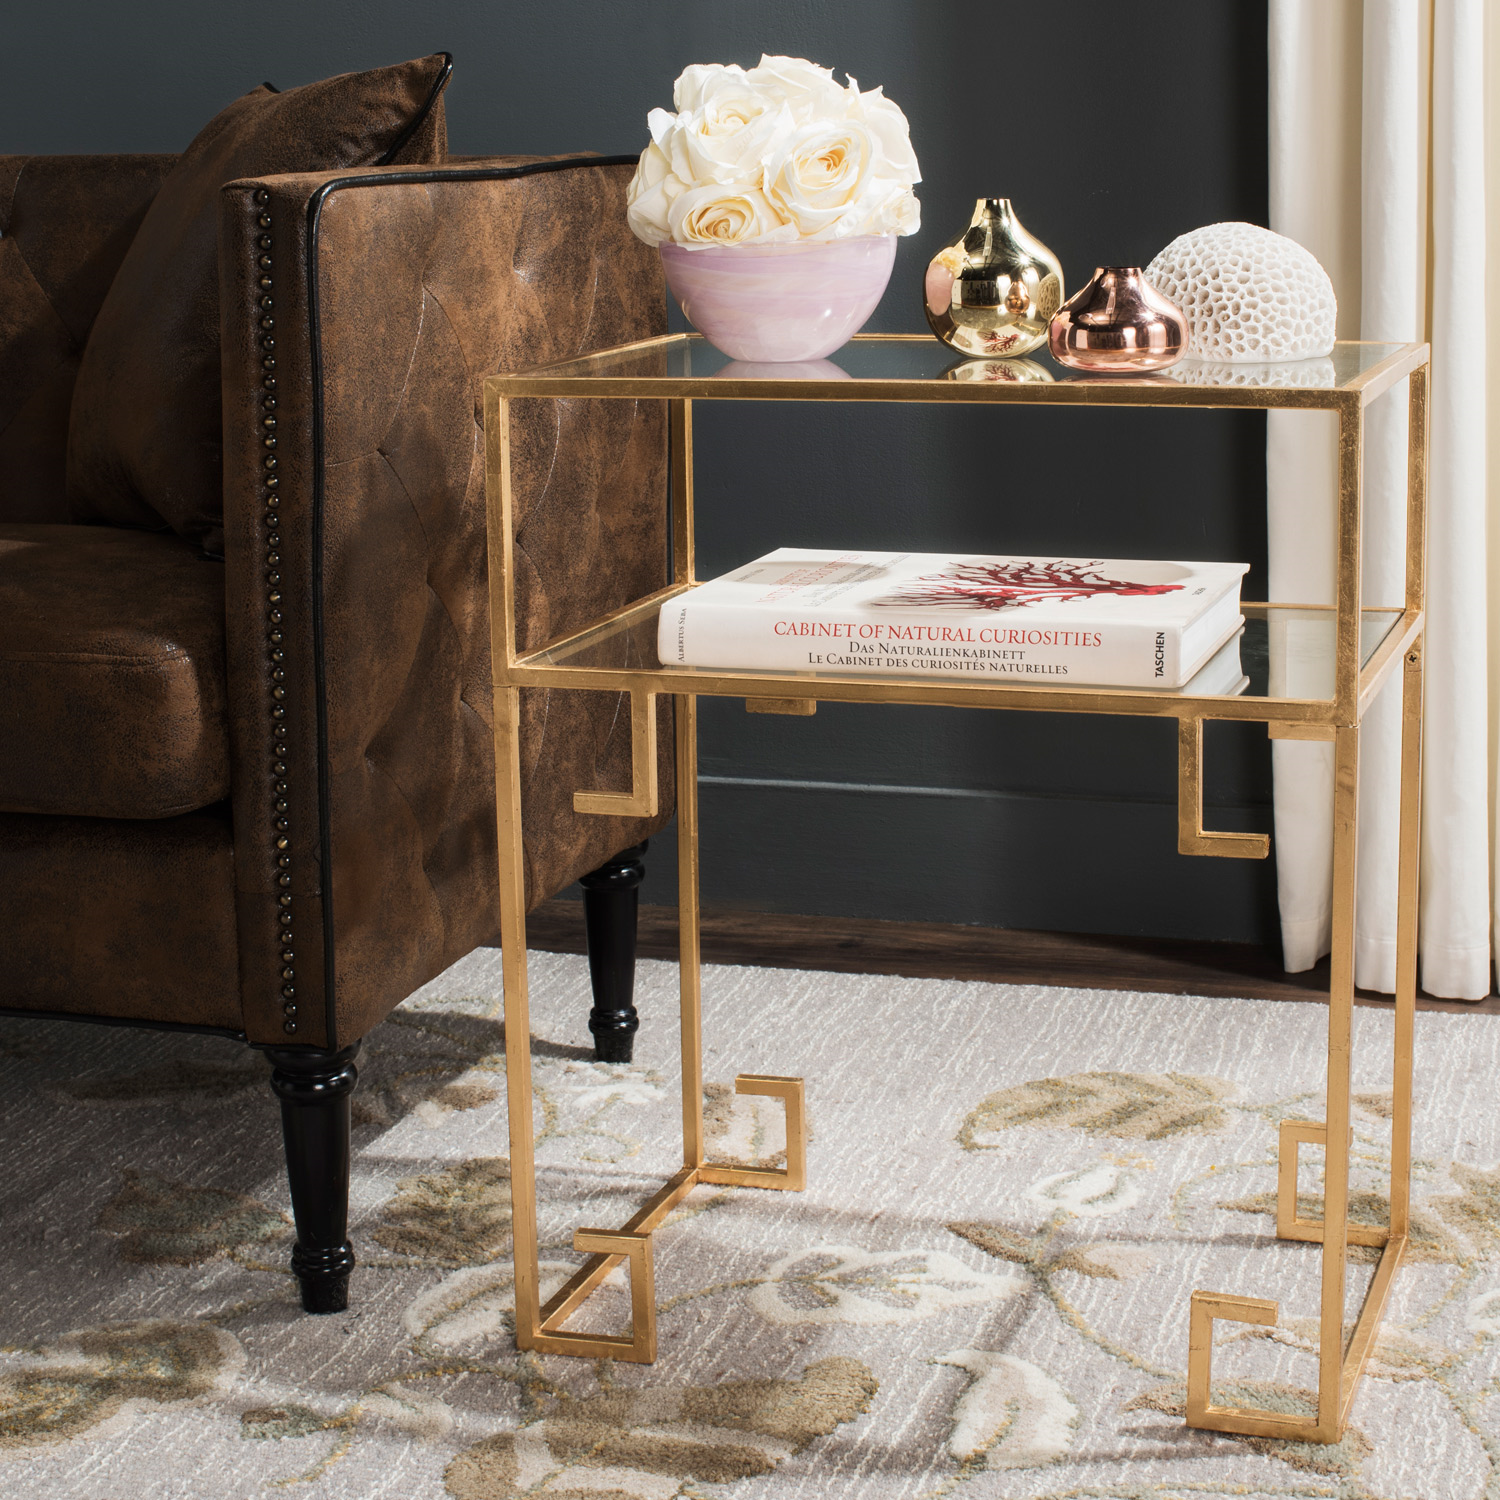 The Berdine accent table lends sophisticated style to living spaces and entryways in gleaming gold leaf. With a Greek key-inspired design, the metallic frame supports two glass surfaces, ideal for resting a vase or the latest reading material. 22in W x 14in D x 26.3in H. Iron, glass. Gold leaf, clear. Assembly required. Wipe with soft, dry cloth to clean and maintain regular dusting.